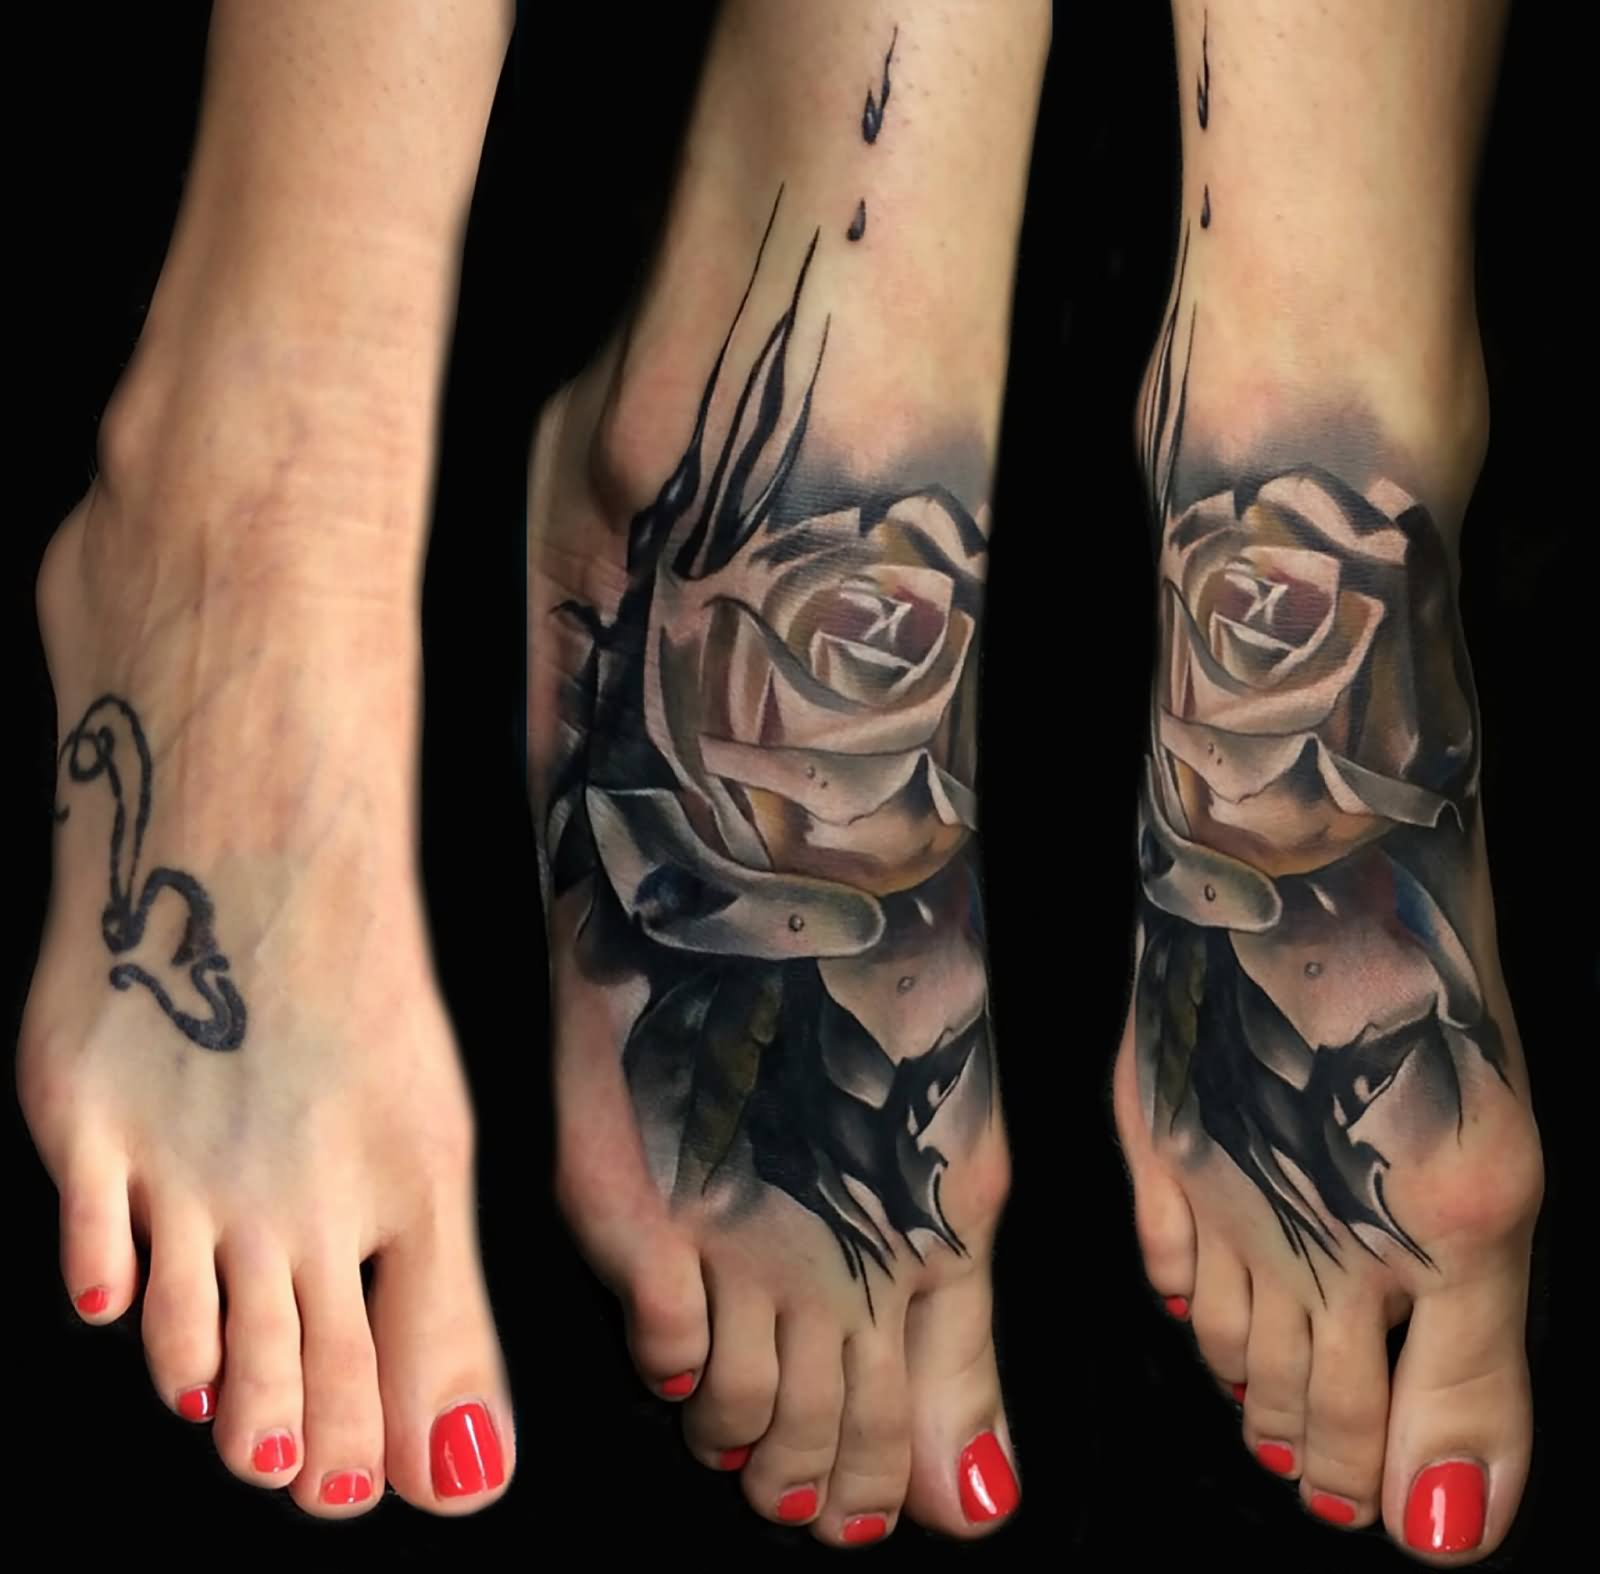 Foot Tattoos: 39+ Awesome Rose Foot Tattoos